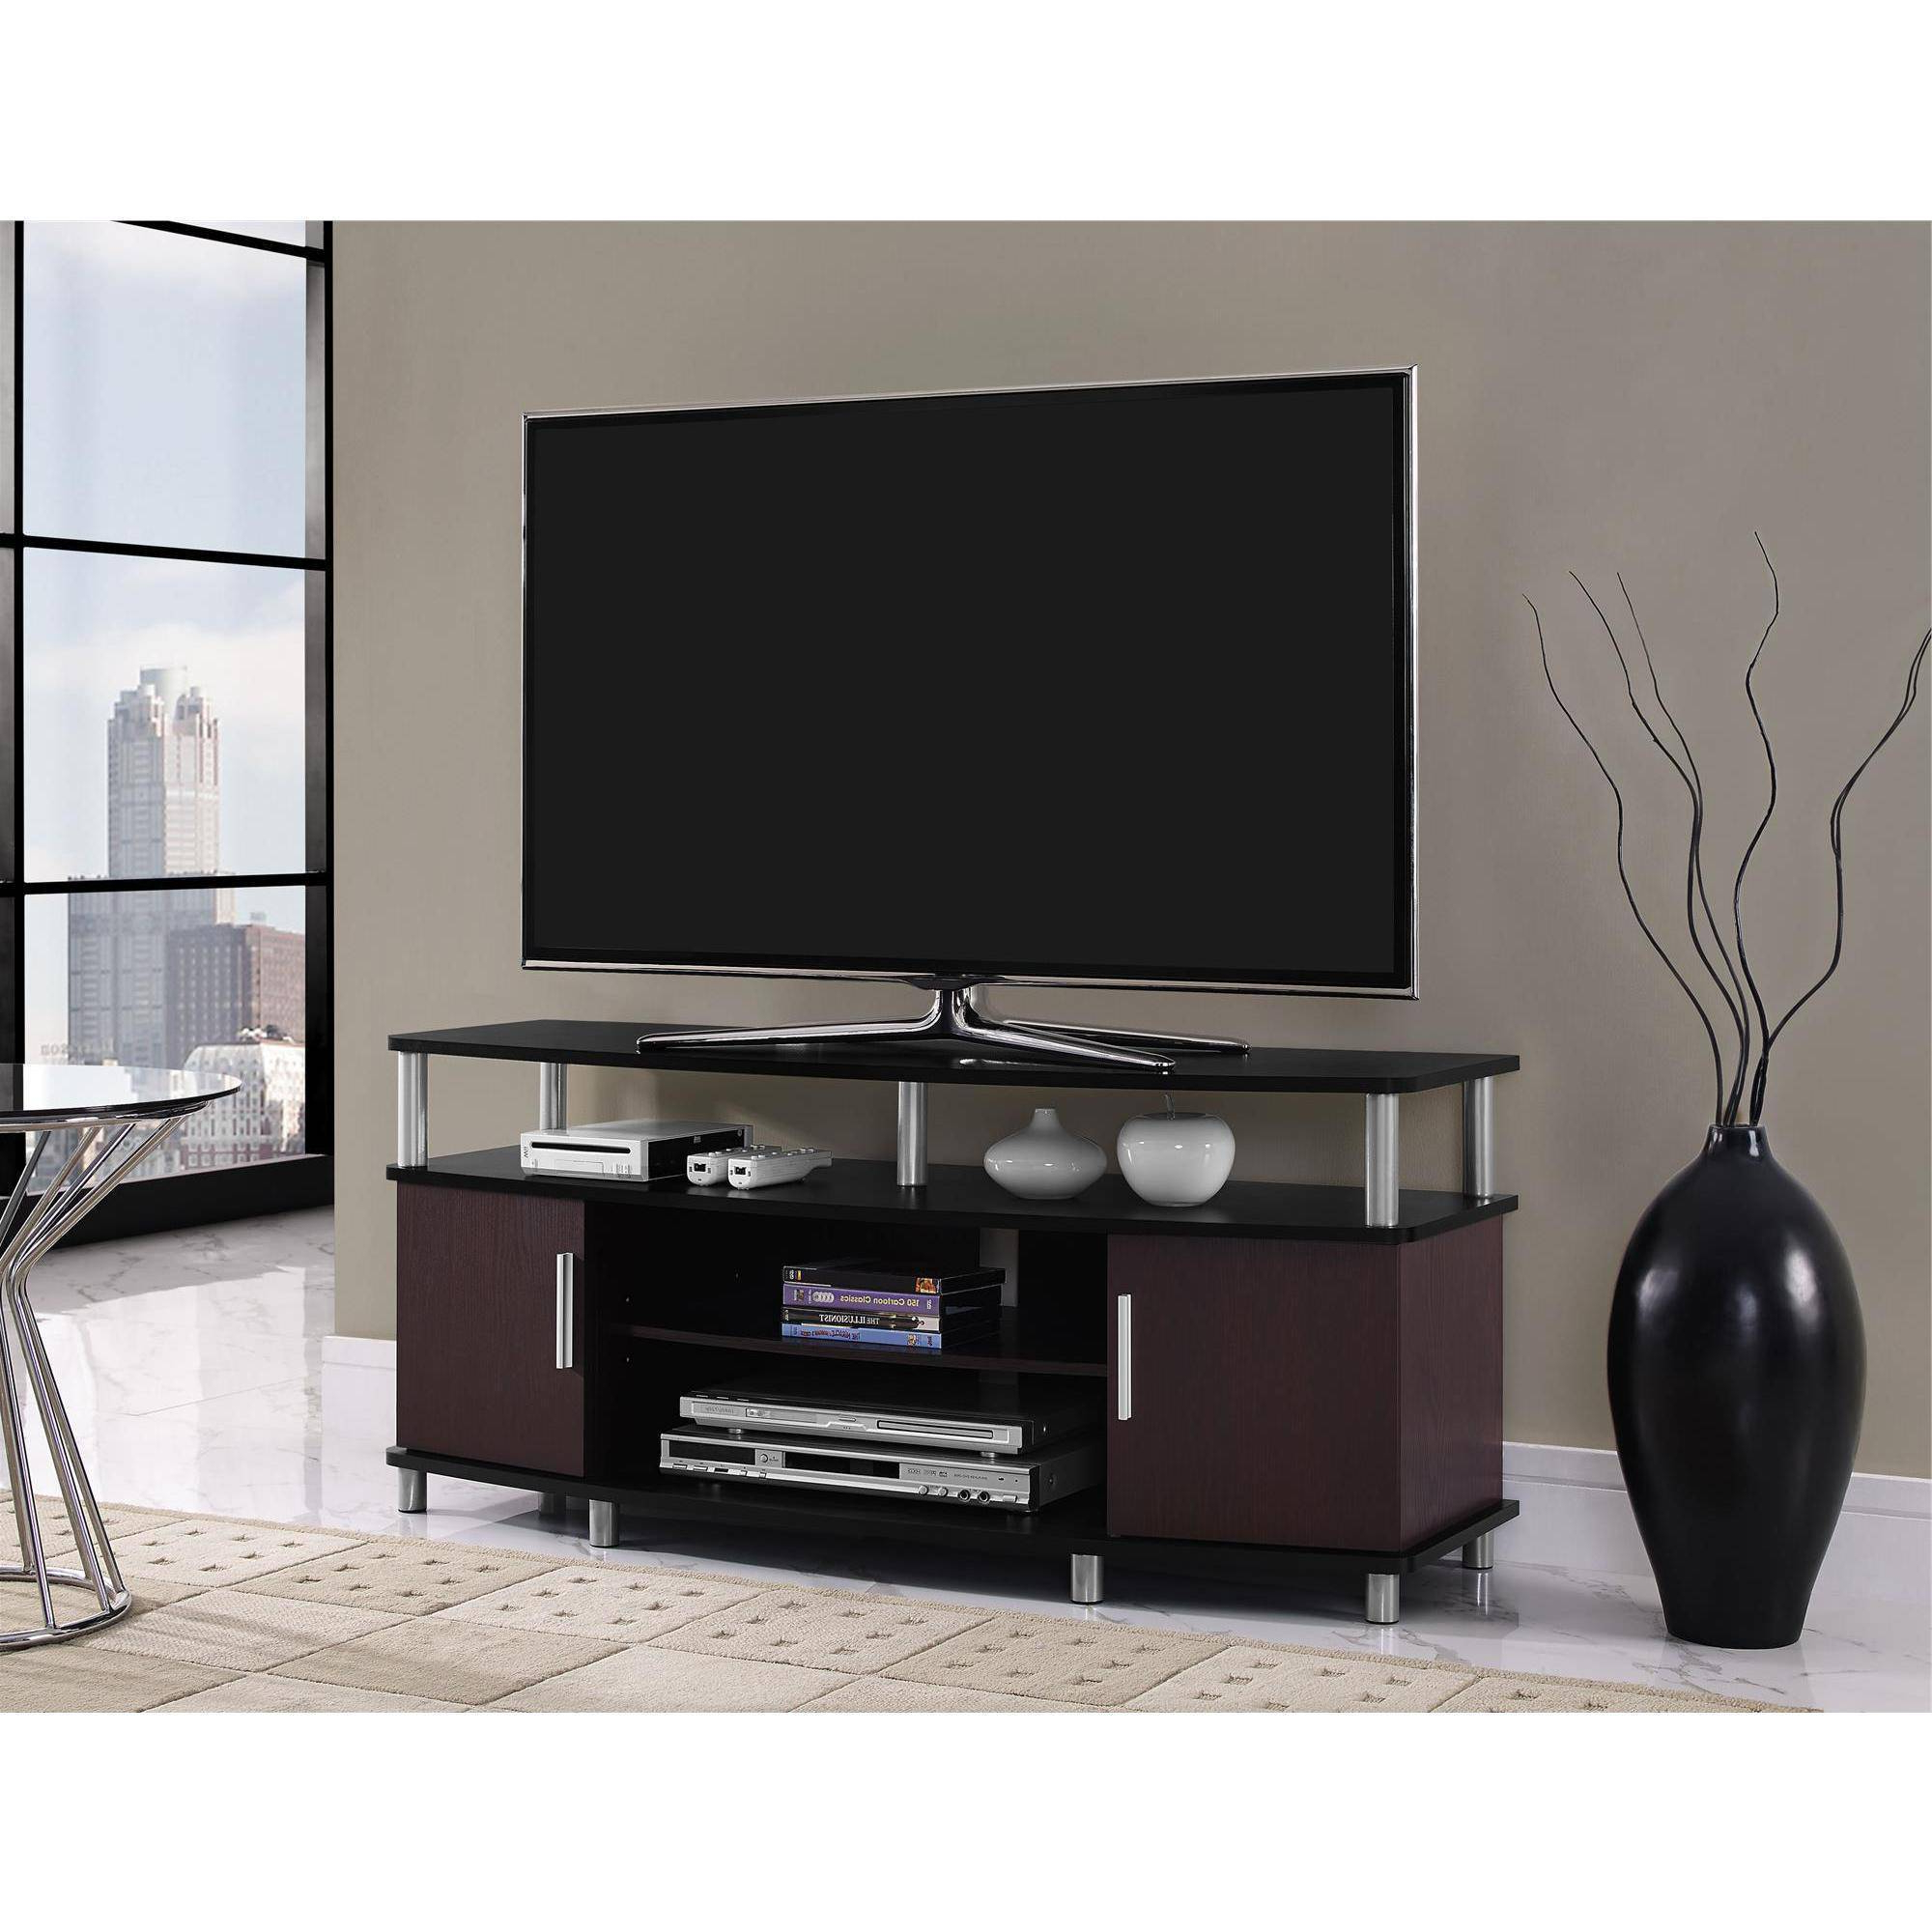 "Well Known Carson Tv Stand, For Tvs Up To 50"", Multiple Finishes – Walmart In Tv Stands And Bookshelf (View 14 of 20)"